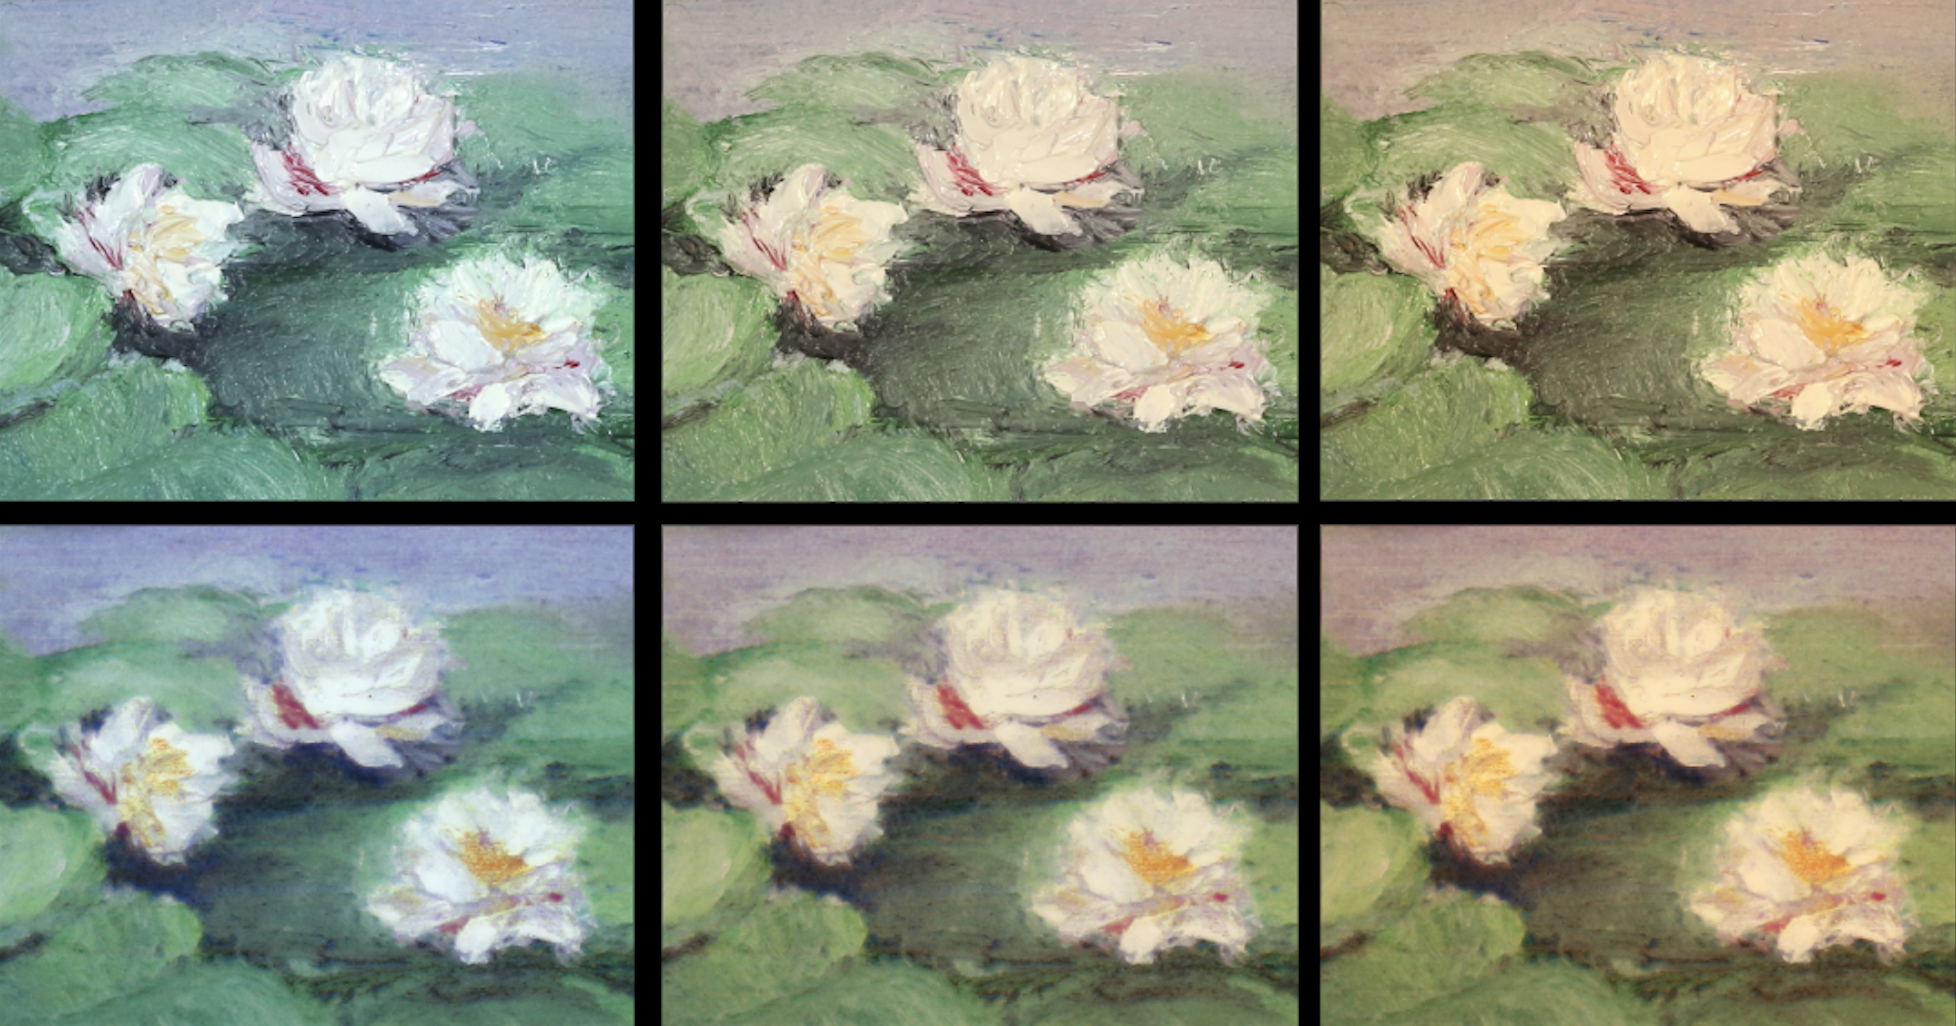 MIT-RePaint-Flowers-03 - RePaint can reproduce paintings regardless of different lighting conditions (credit MIT CSAIL).png